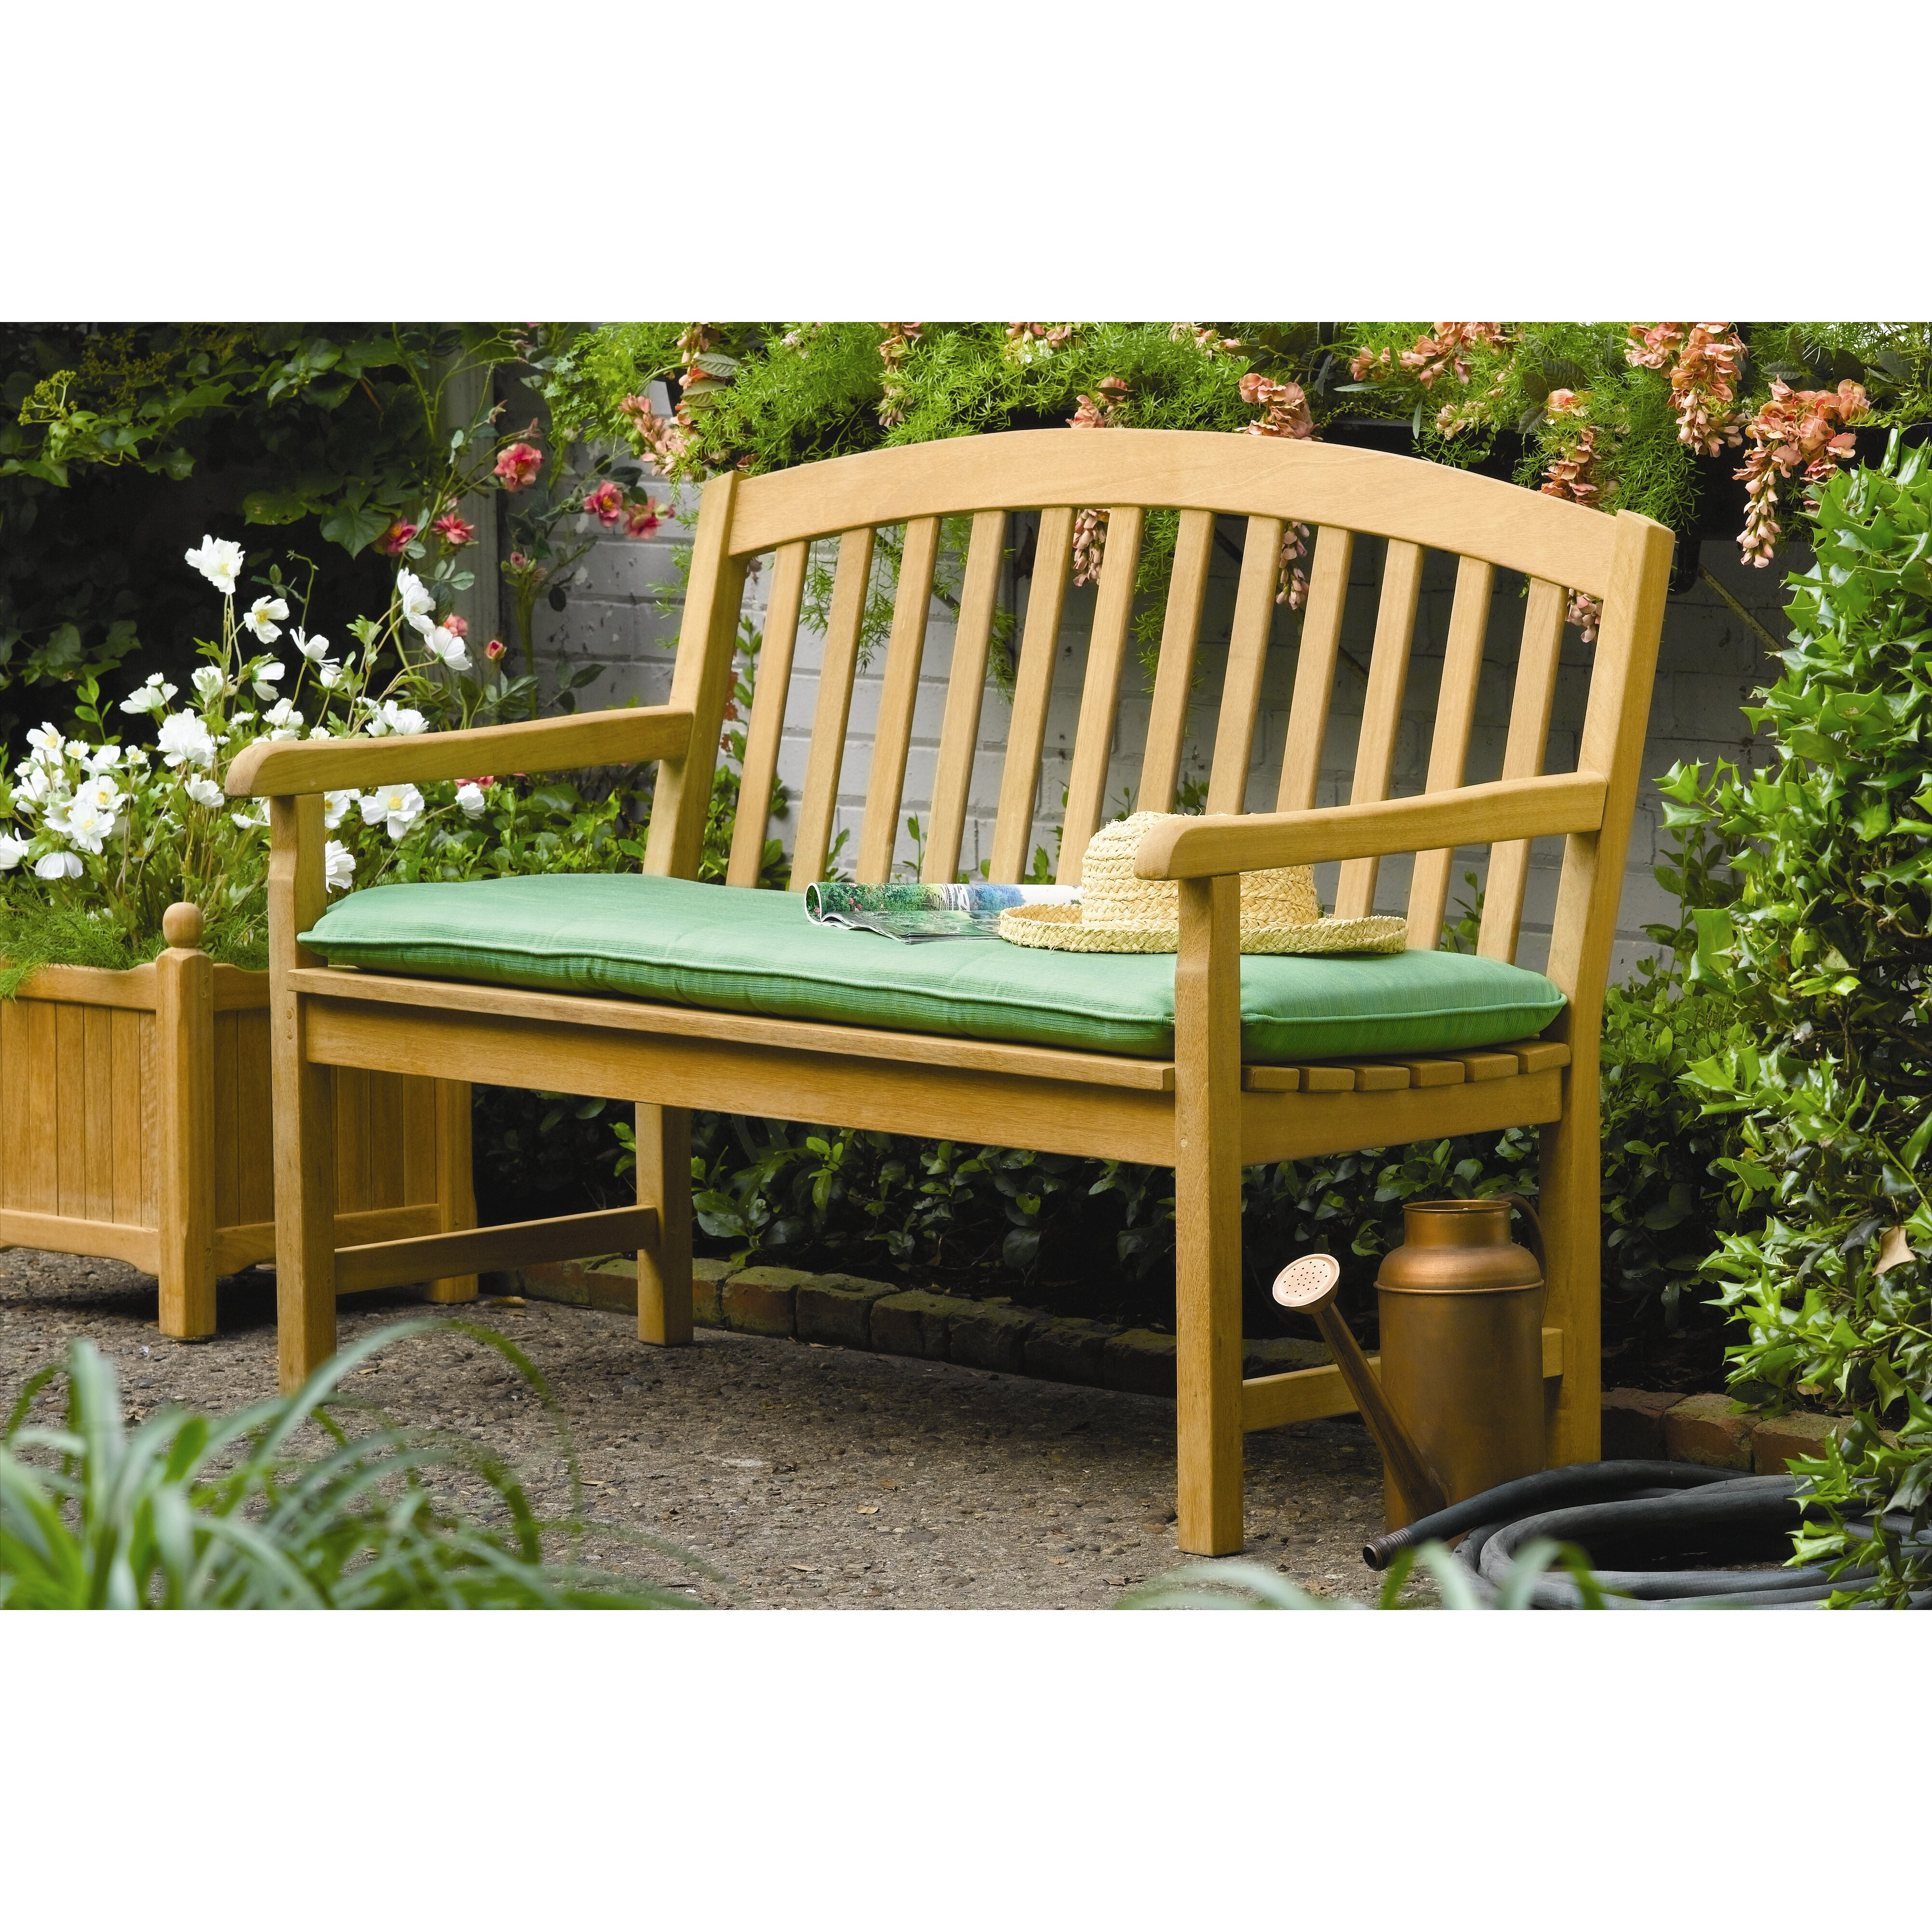 Wooden Benches Outdoor: Oxford Garden Chadwick Wood Garden Bench & Reviews